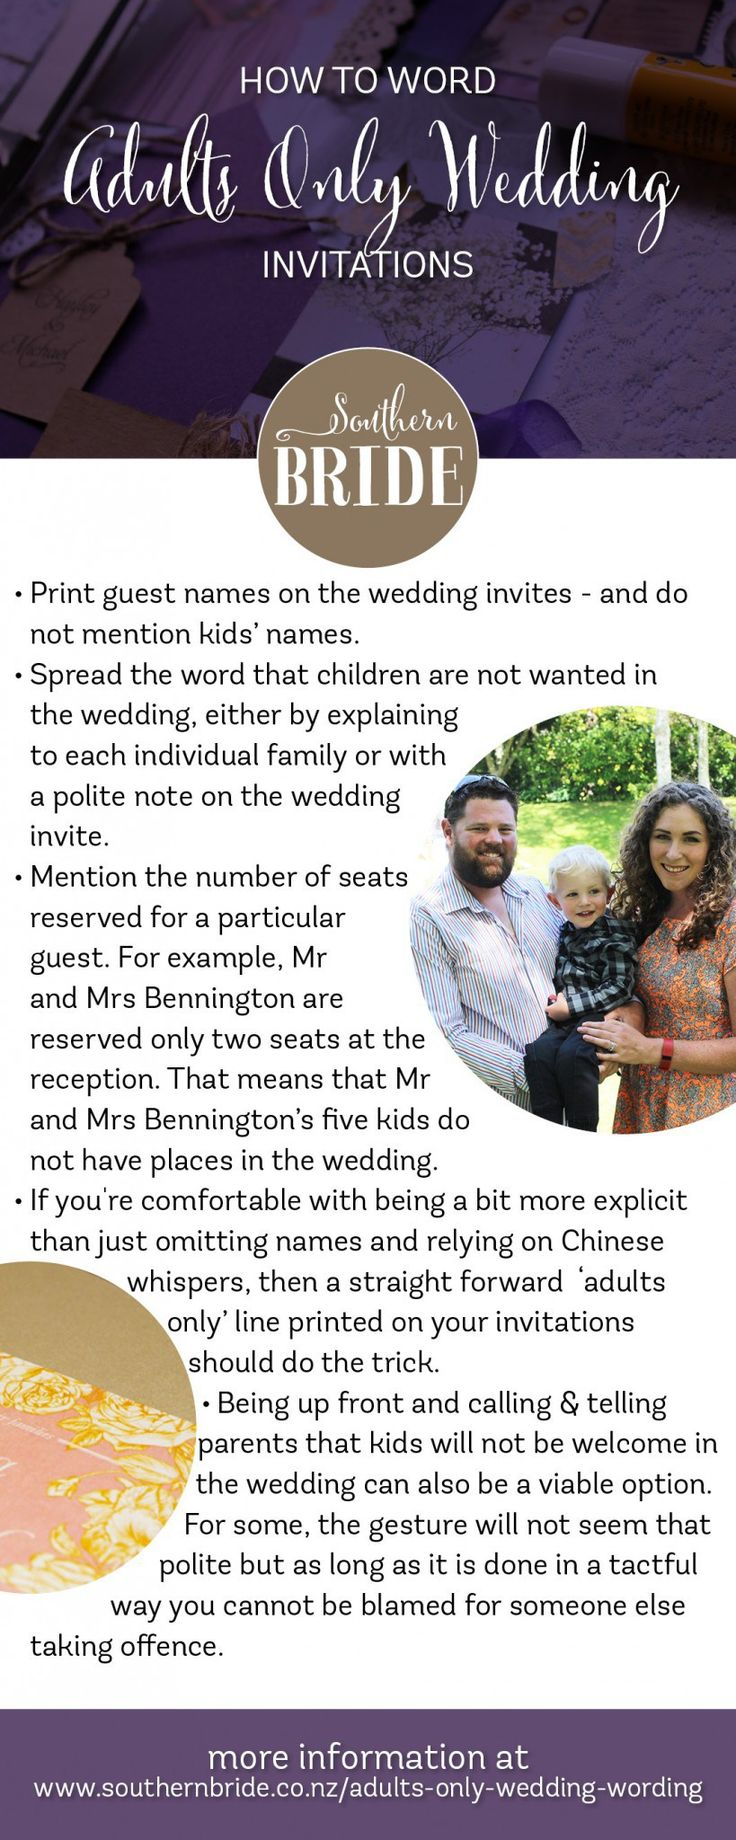 How to word adults only weddings - I don't want to invite children to my wedding